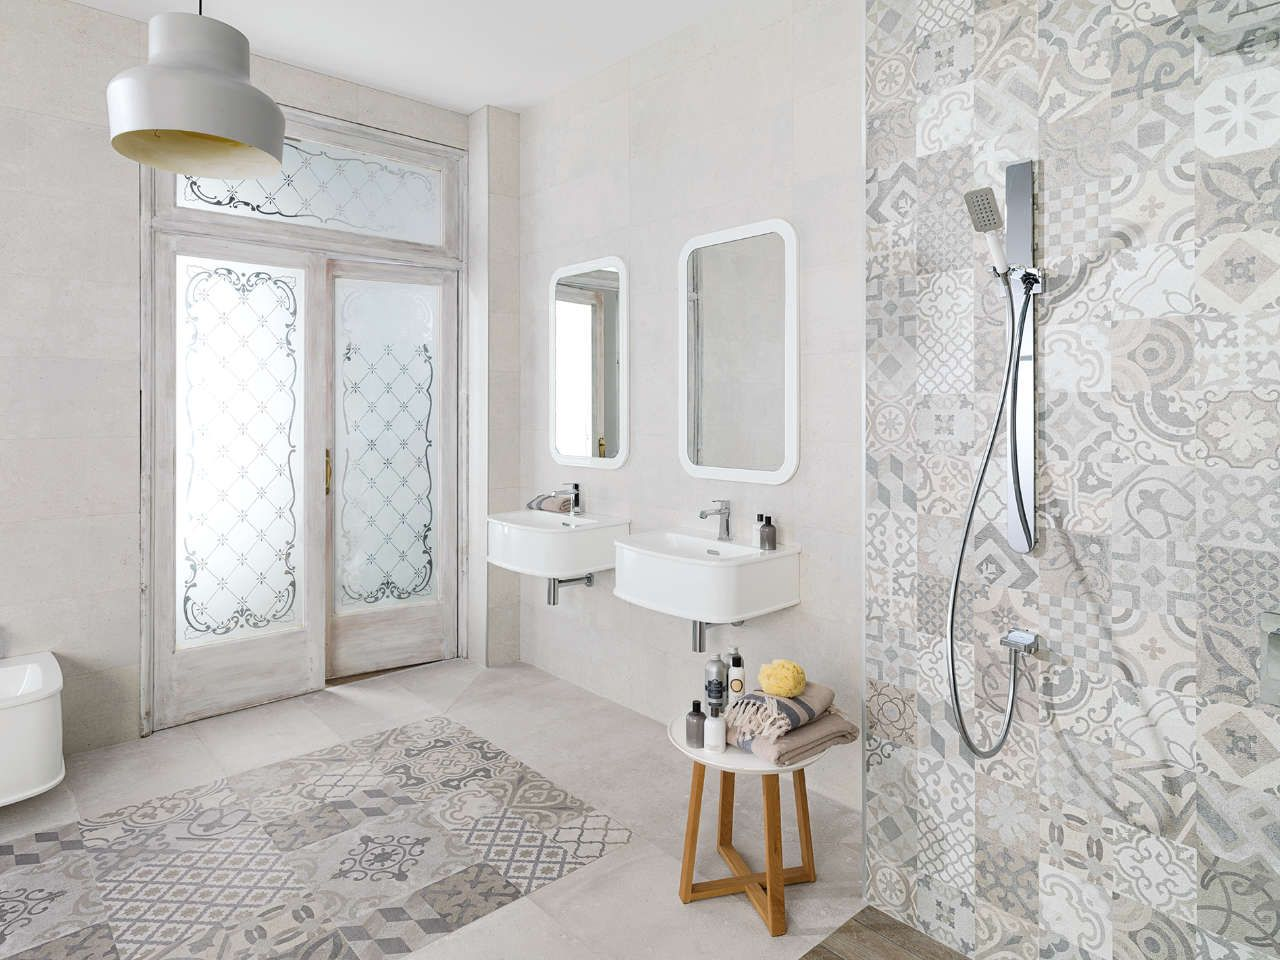 Carreaux De Ciment Porcelanosa Collection Carrelage Ston Ker Porcelanosa Dover Caliza